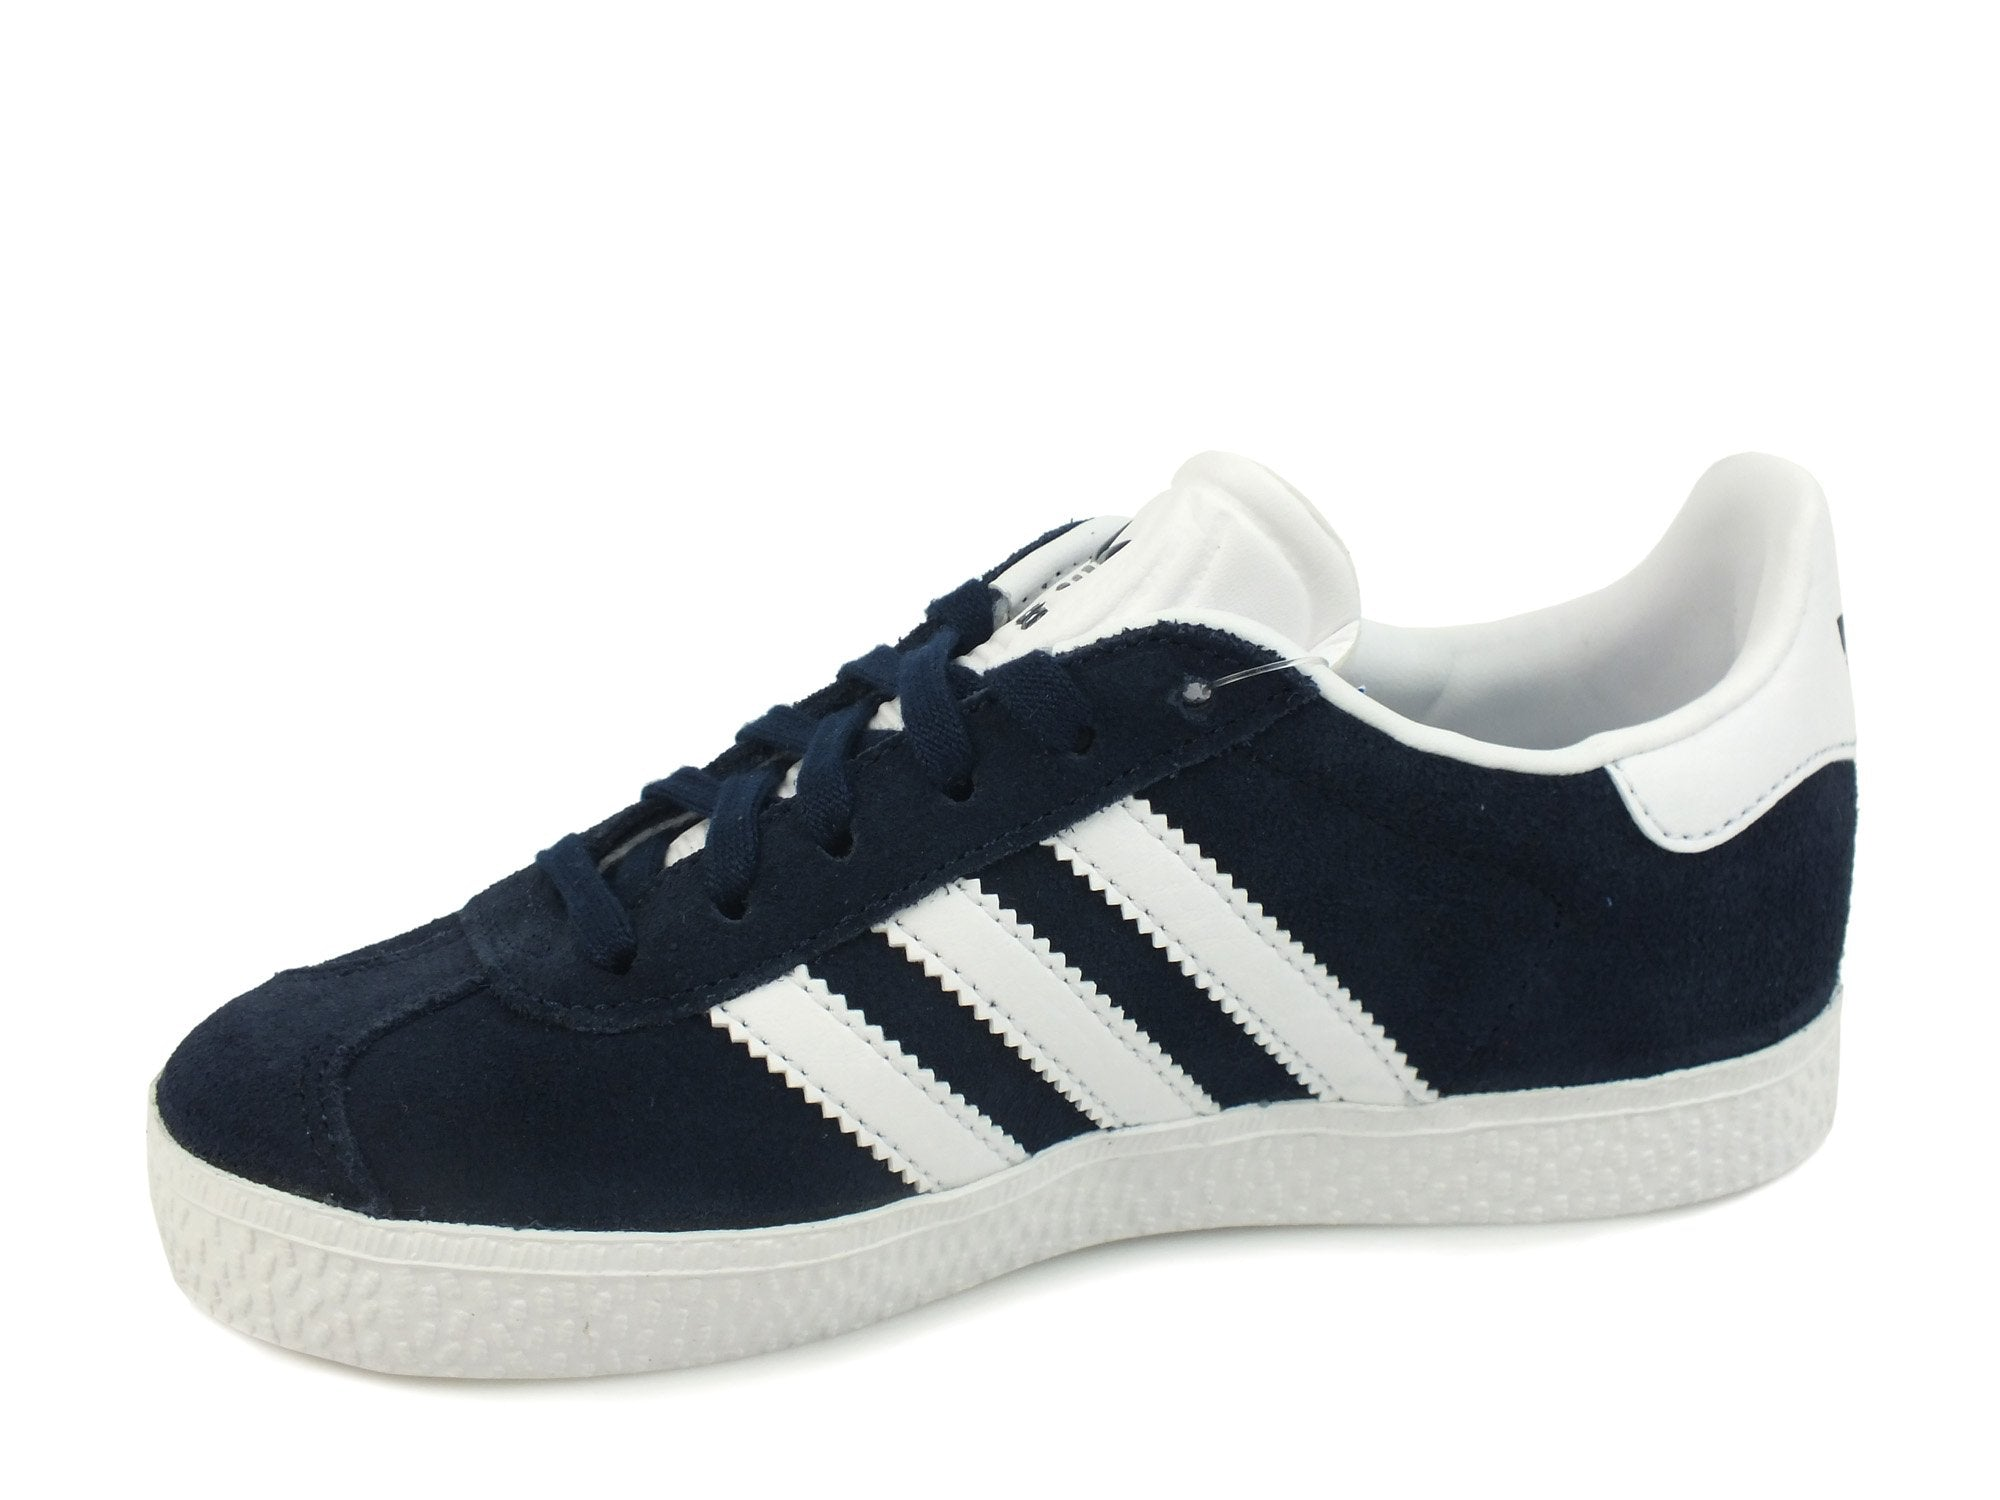 ADIDAS Gazelle C sneakers Navy Blue BY9162